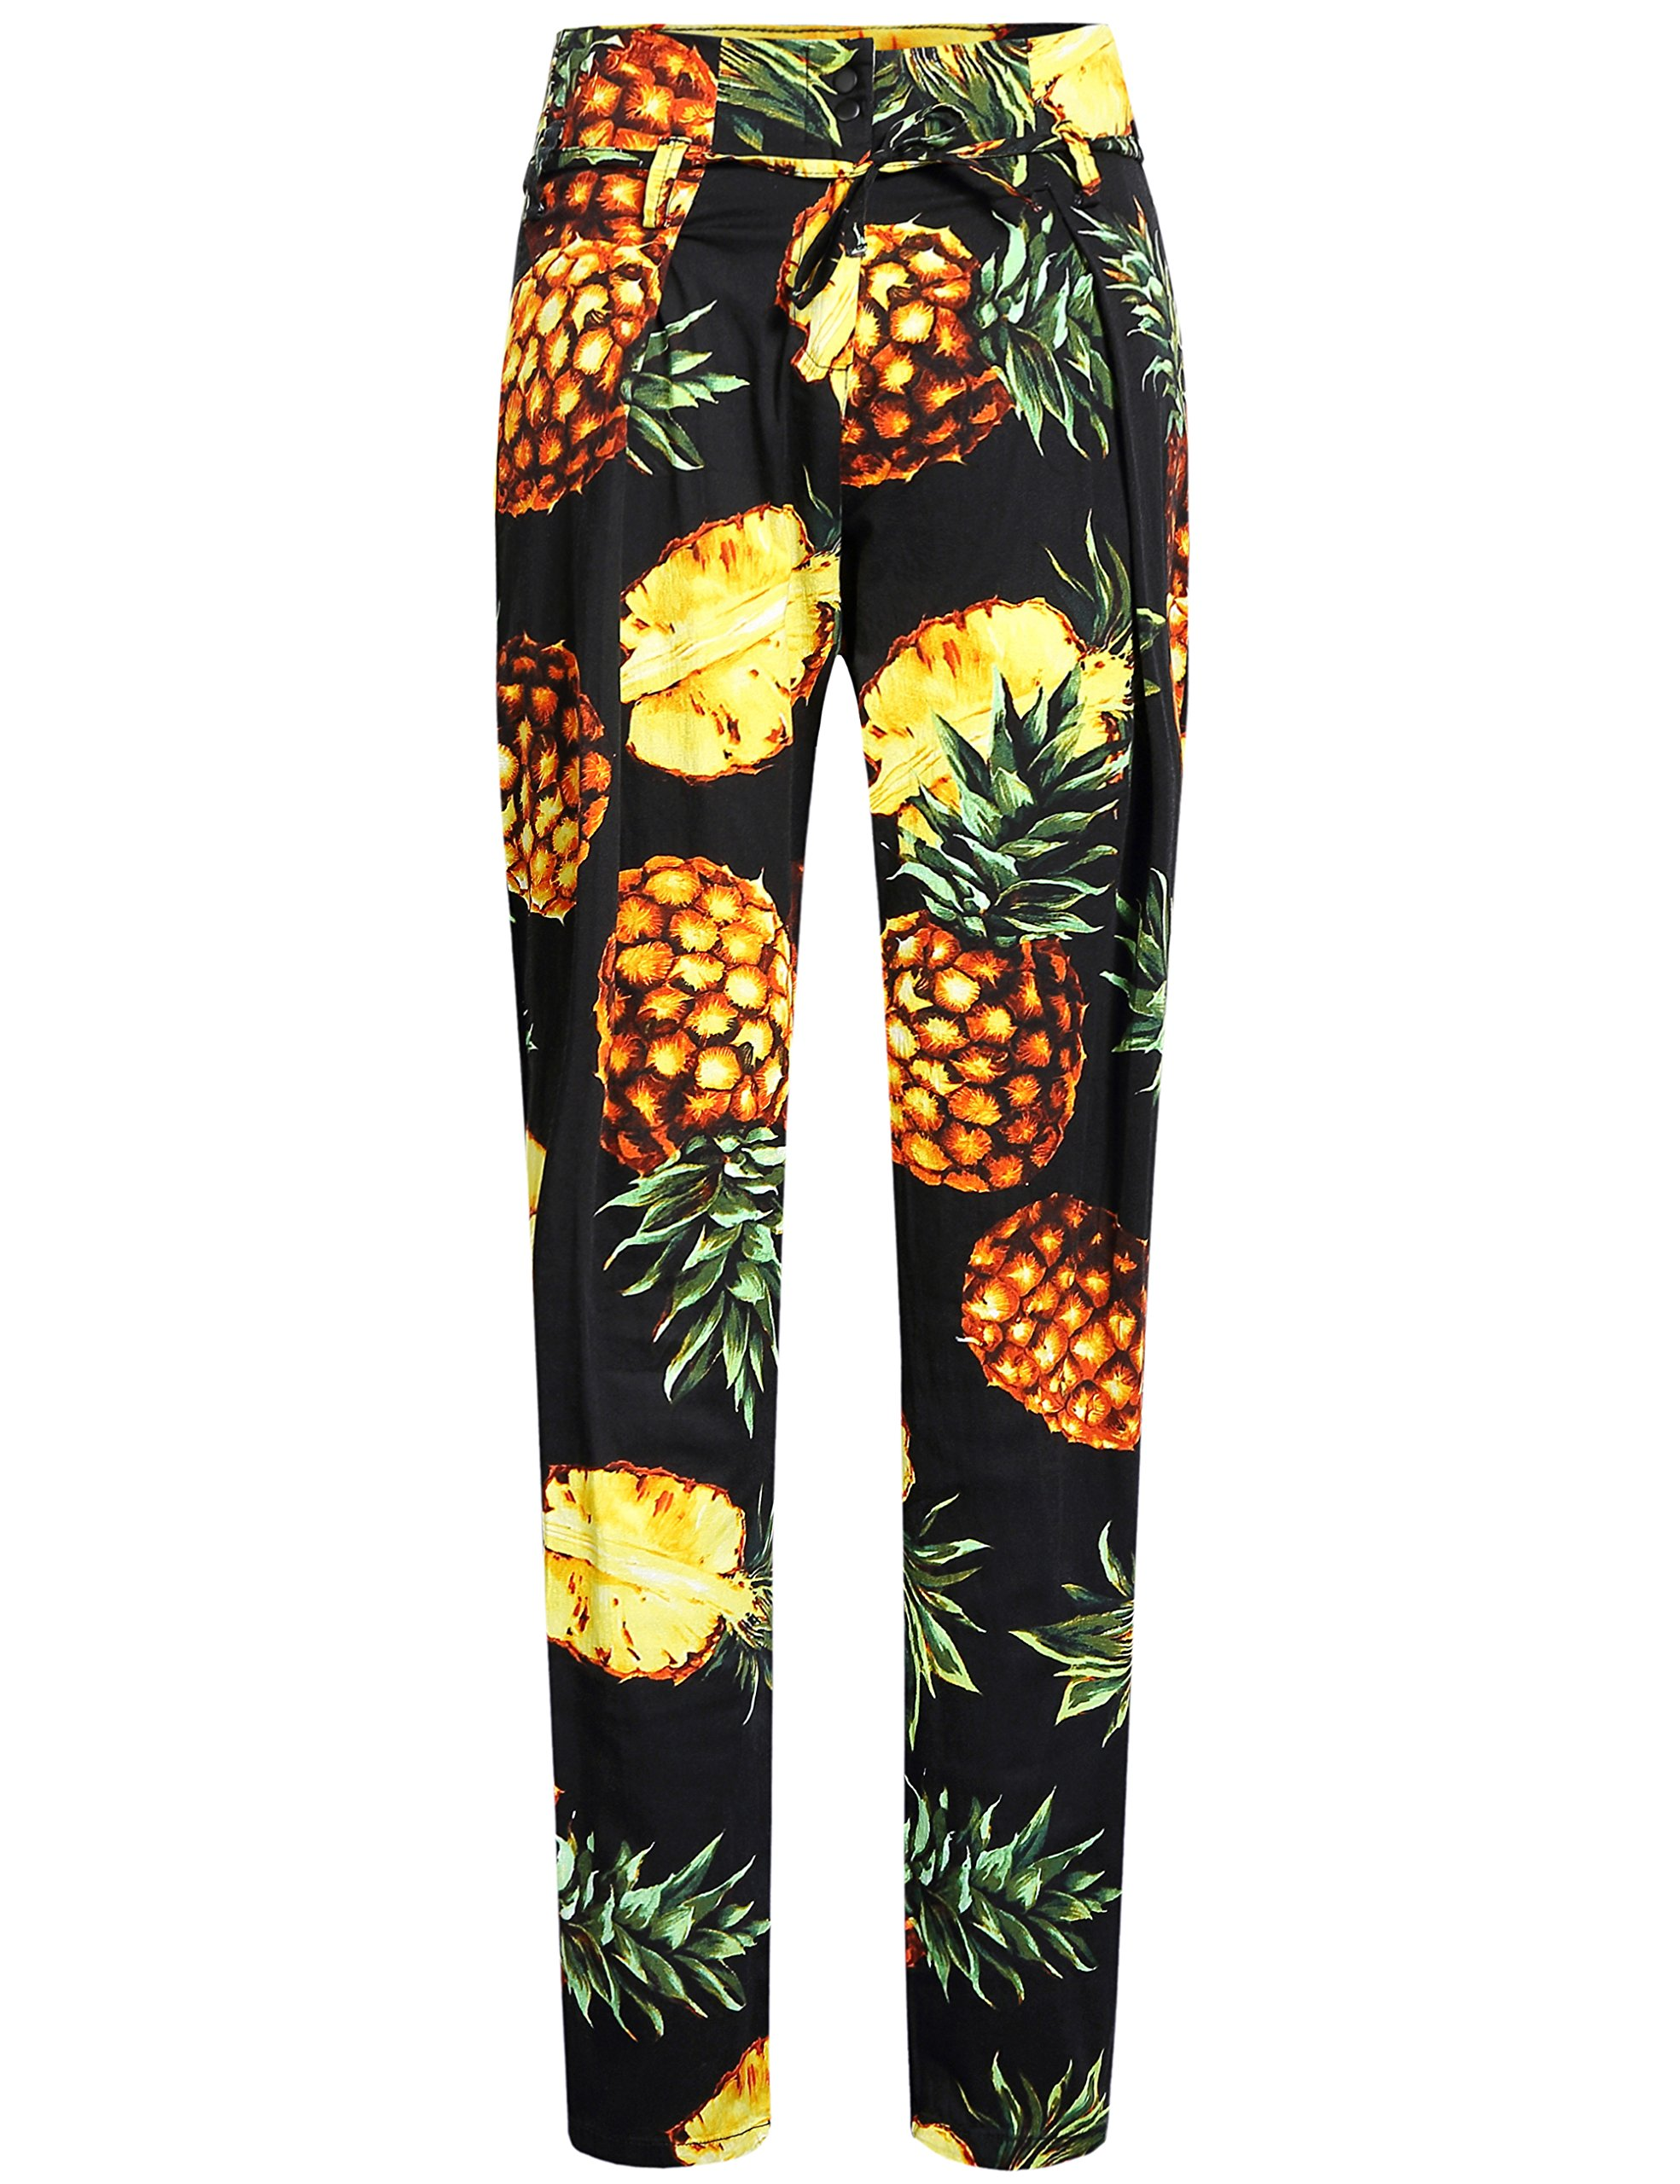 SSLR Women's Pineapples Relaxed Fit Casual Slim Leg Hawaiian Pants (W28 x L30, Black)